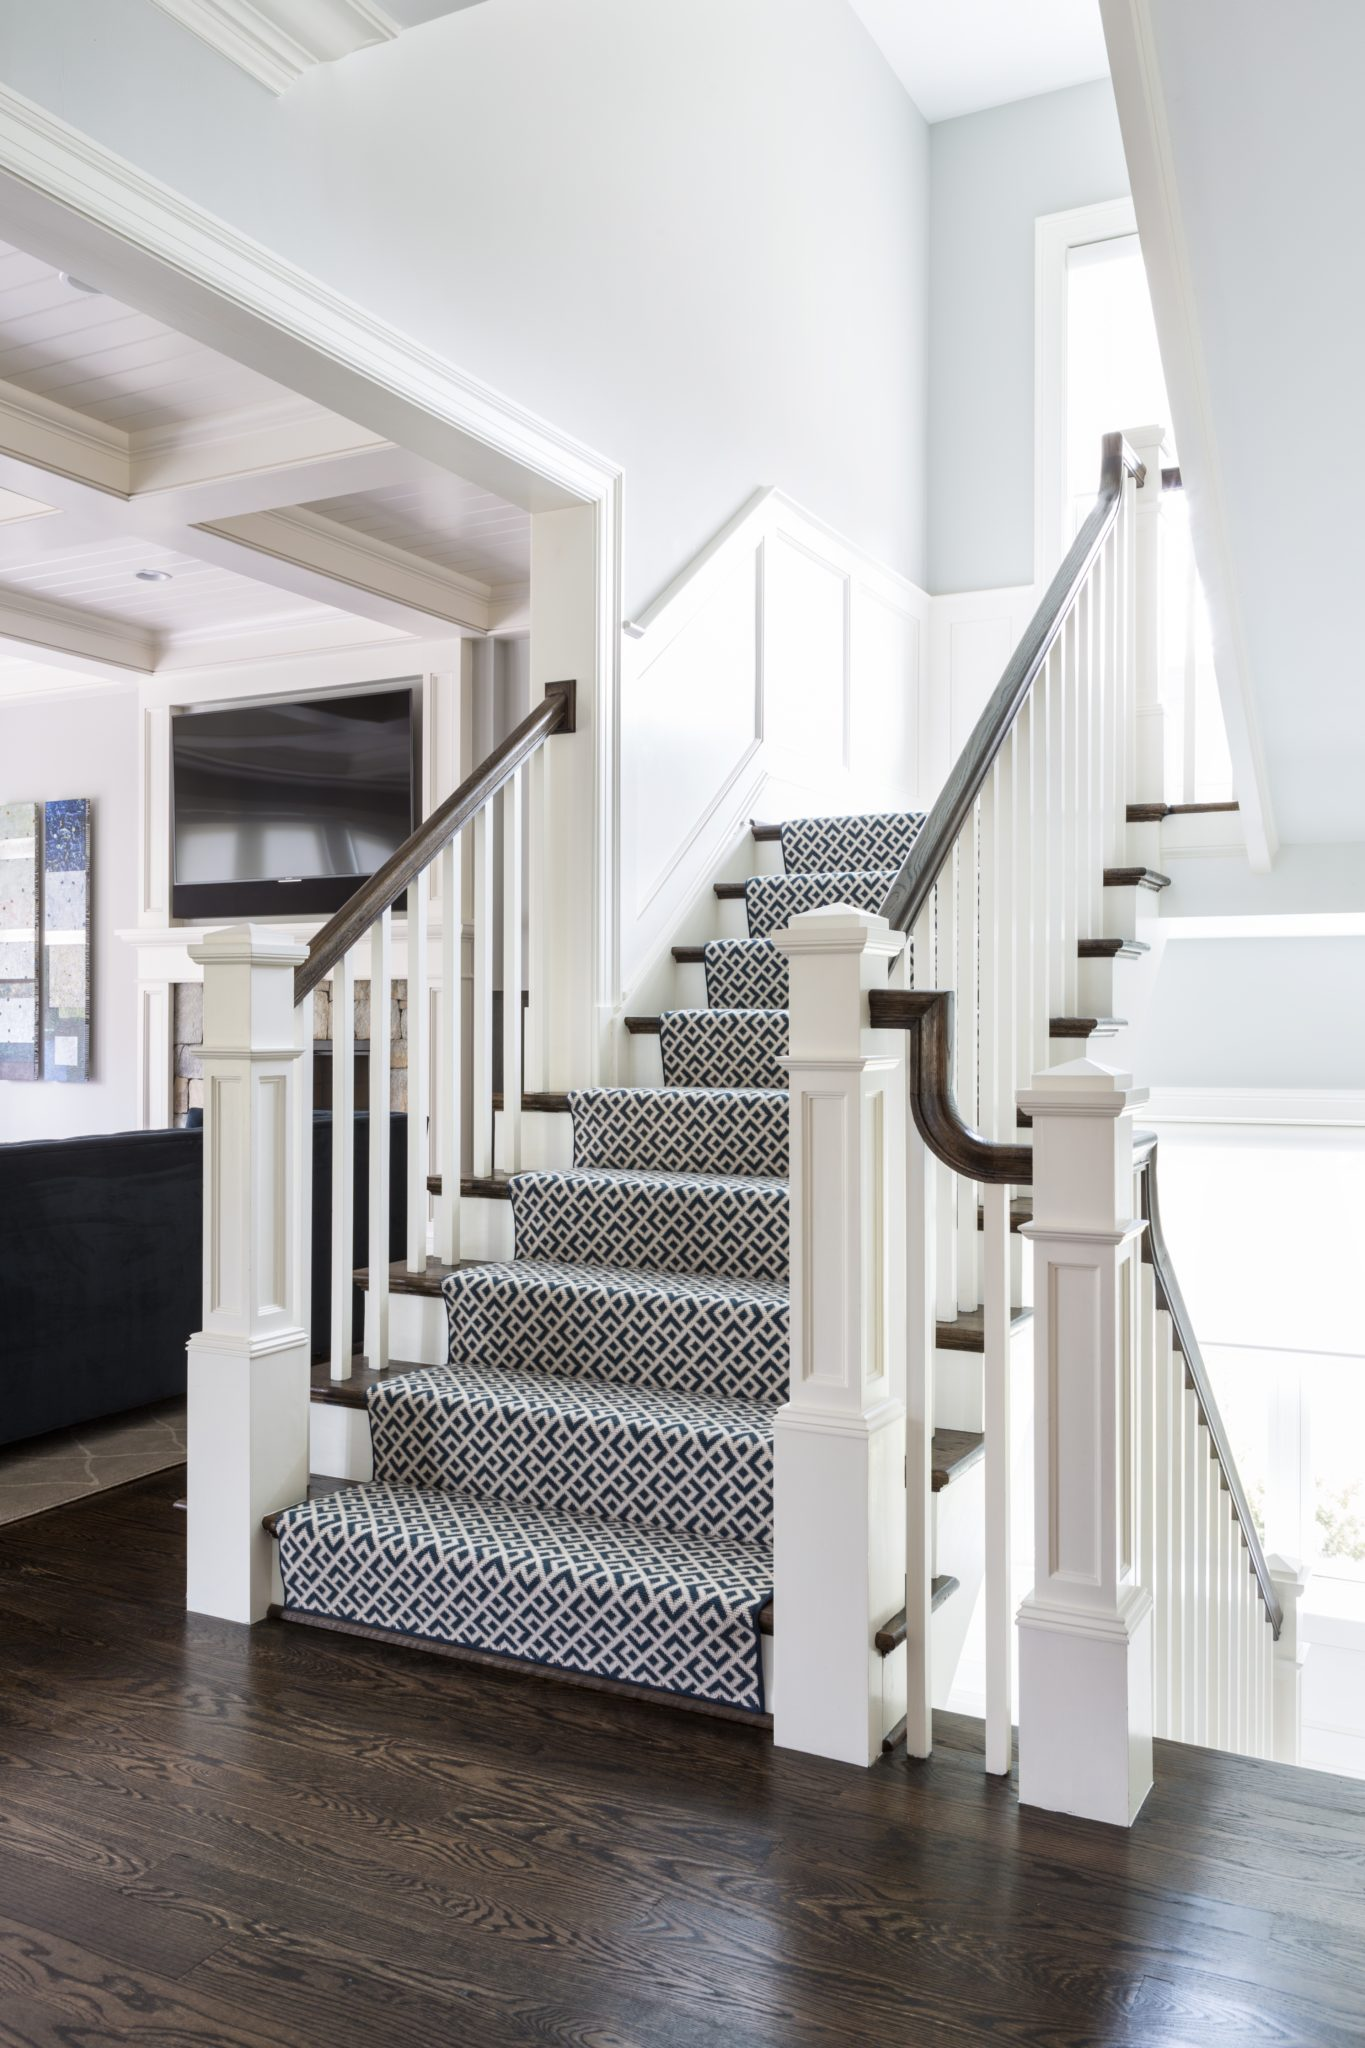 McLean II - Rich and Beautiful Staircase by Celia Welch Interiors